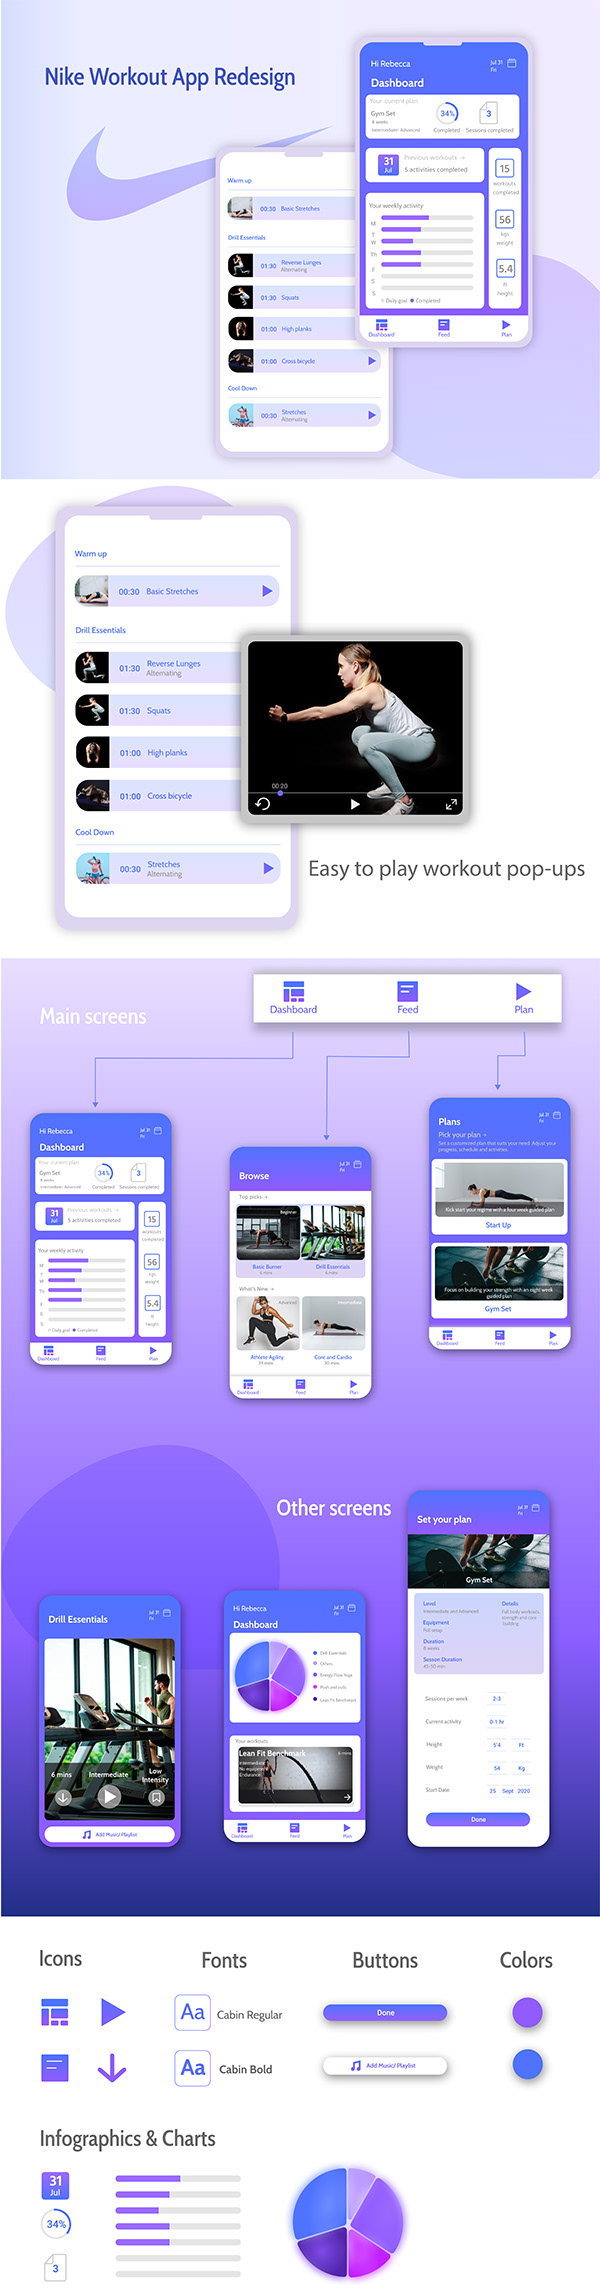 Nike Workout App Redesign